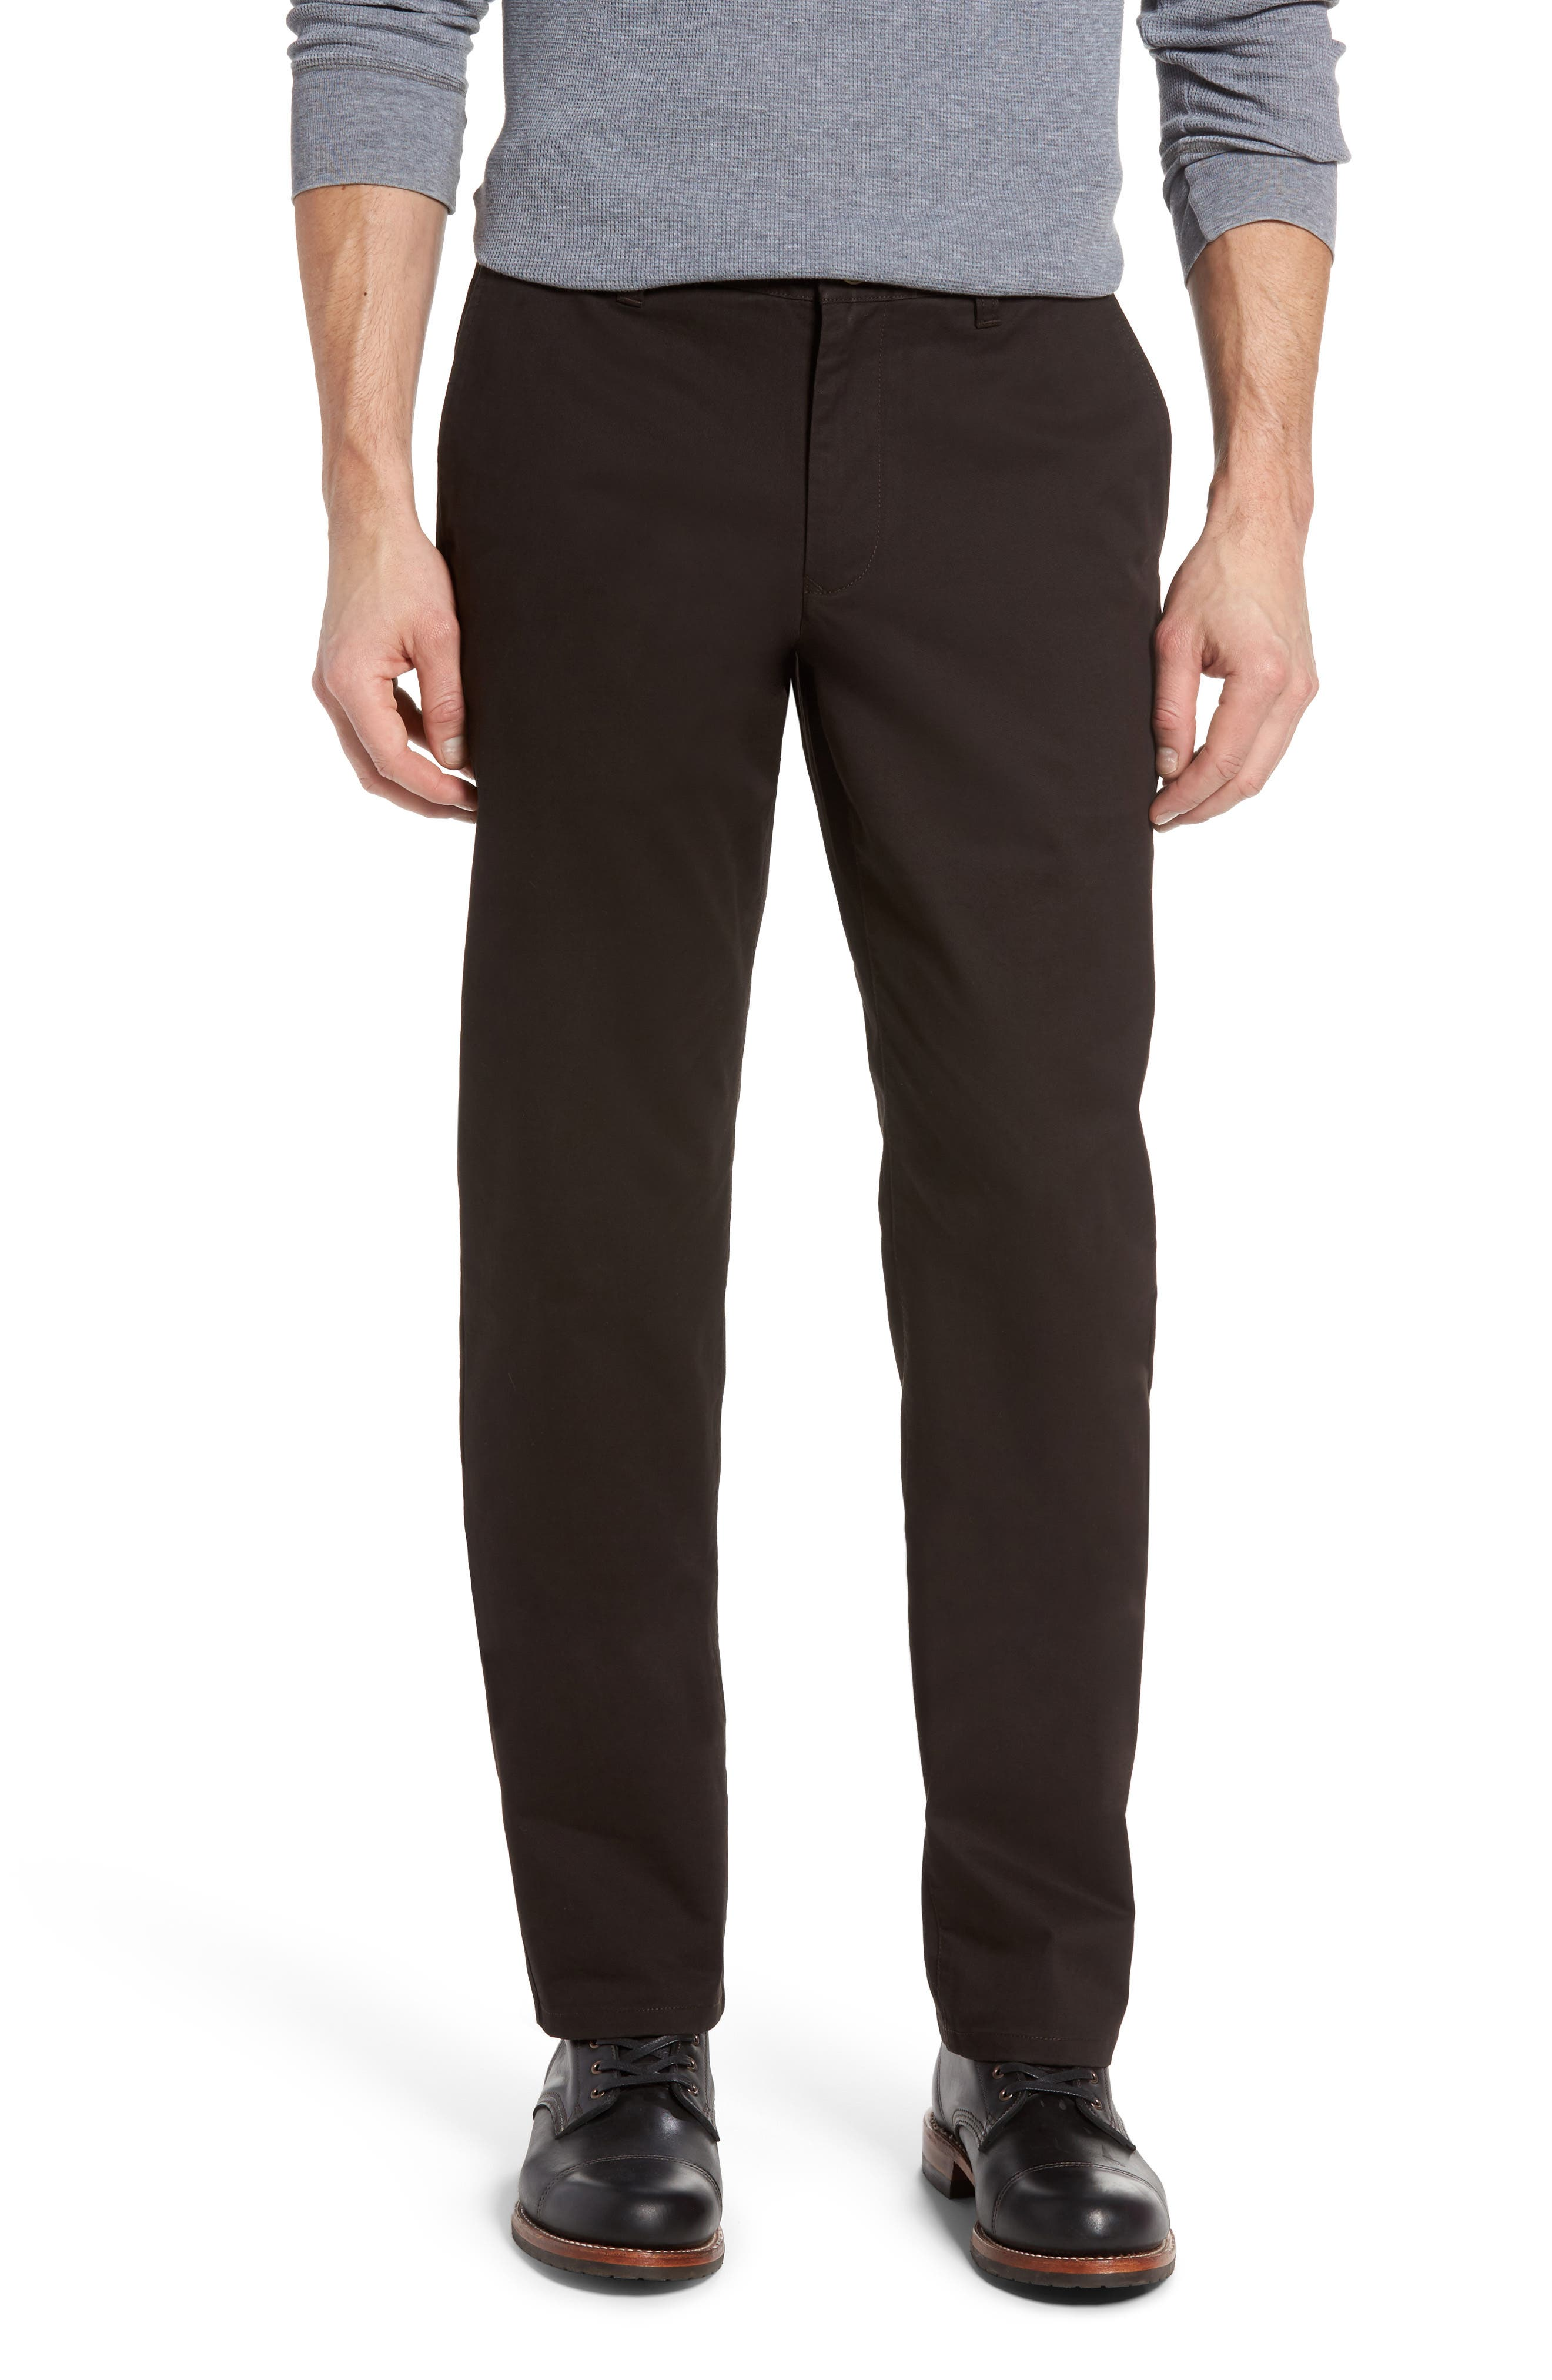 Straight Leg Stretch Washed Chinos,                         Main,                         color, Chocolate Ale